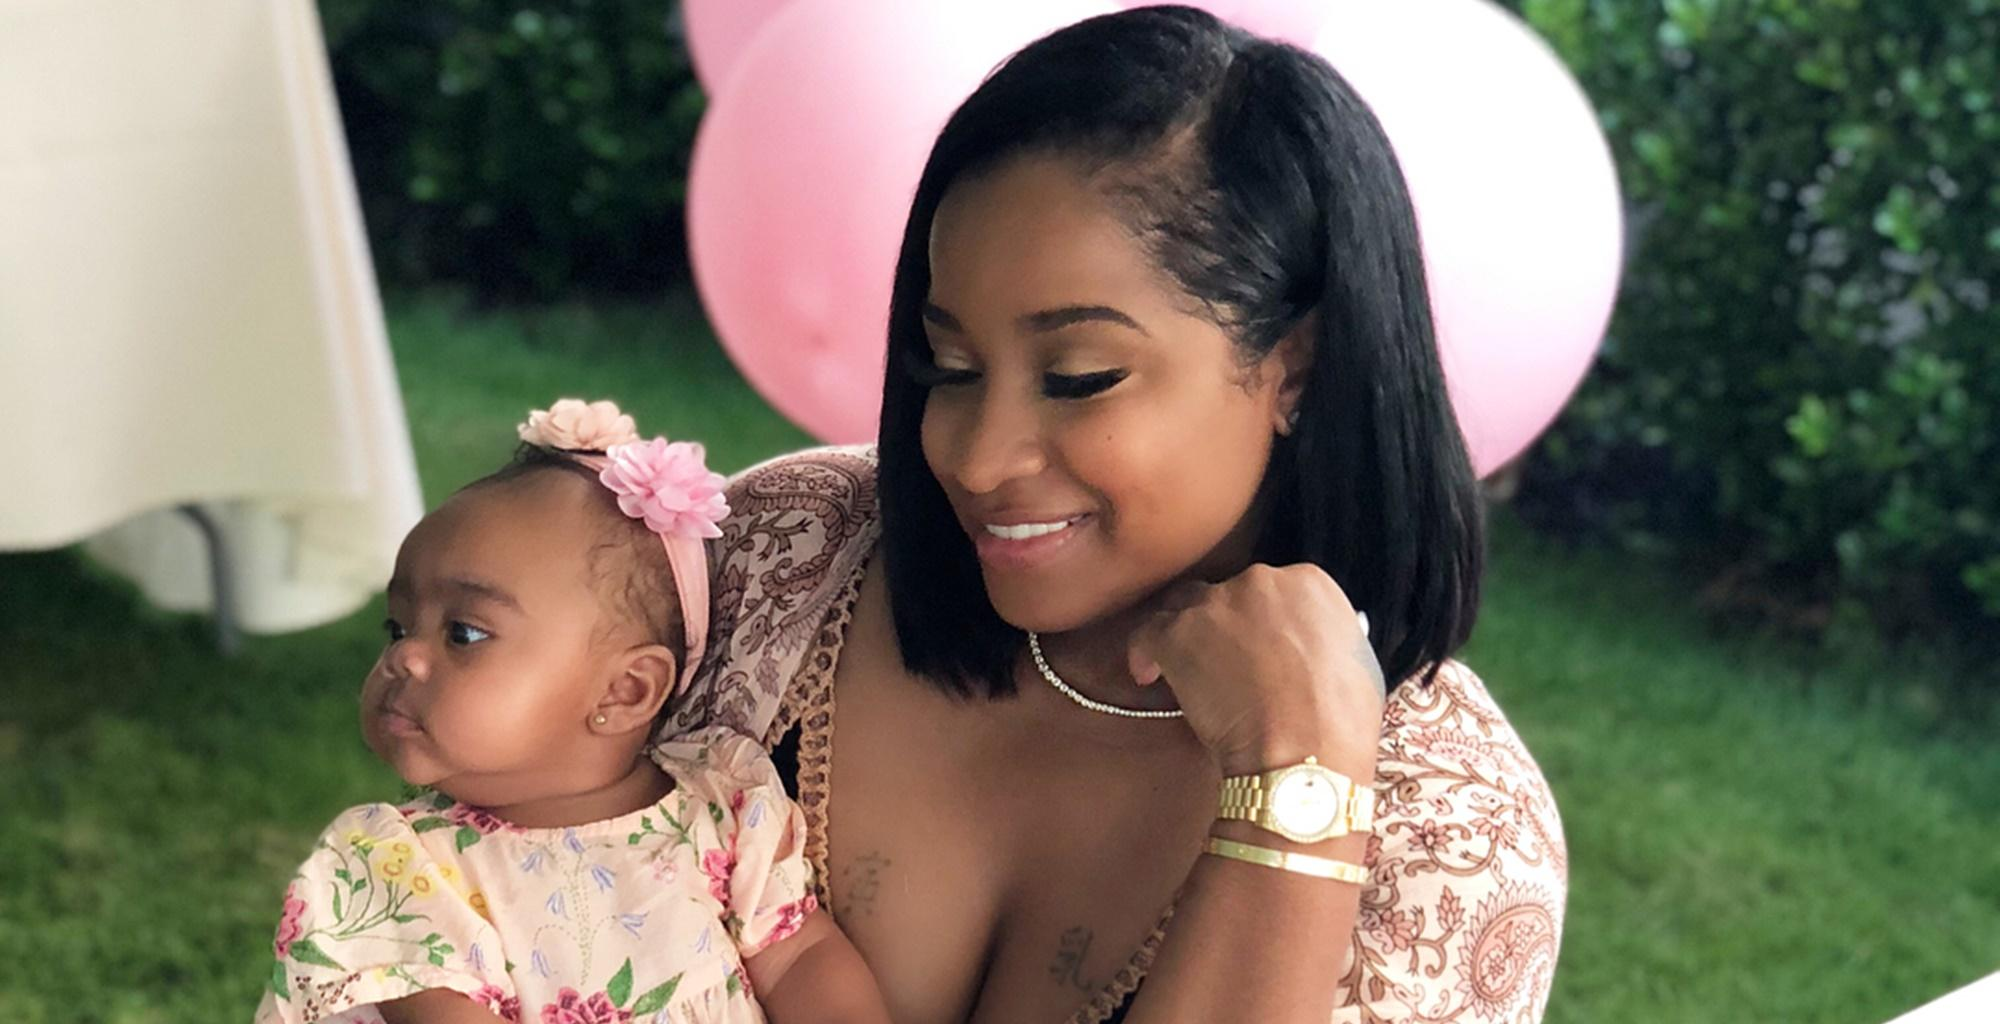 Toya Wright's Daughter Reing Rushing Is Getting Ready For Her 1st Birthday - Check Out The Gorgeous Pics In Which She Looks Like A Ballerina